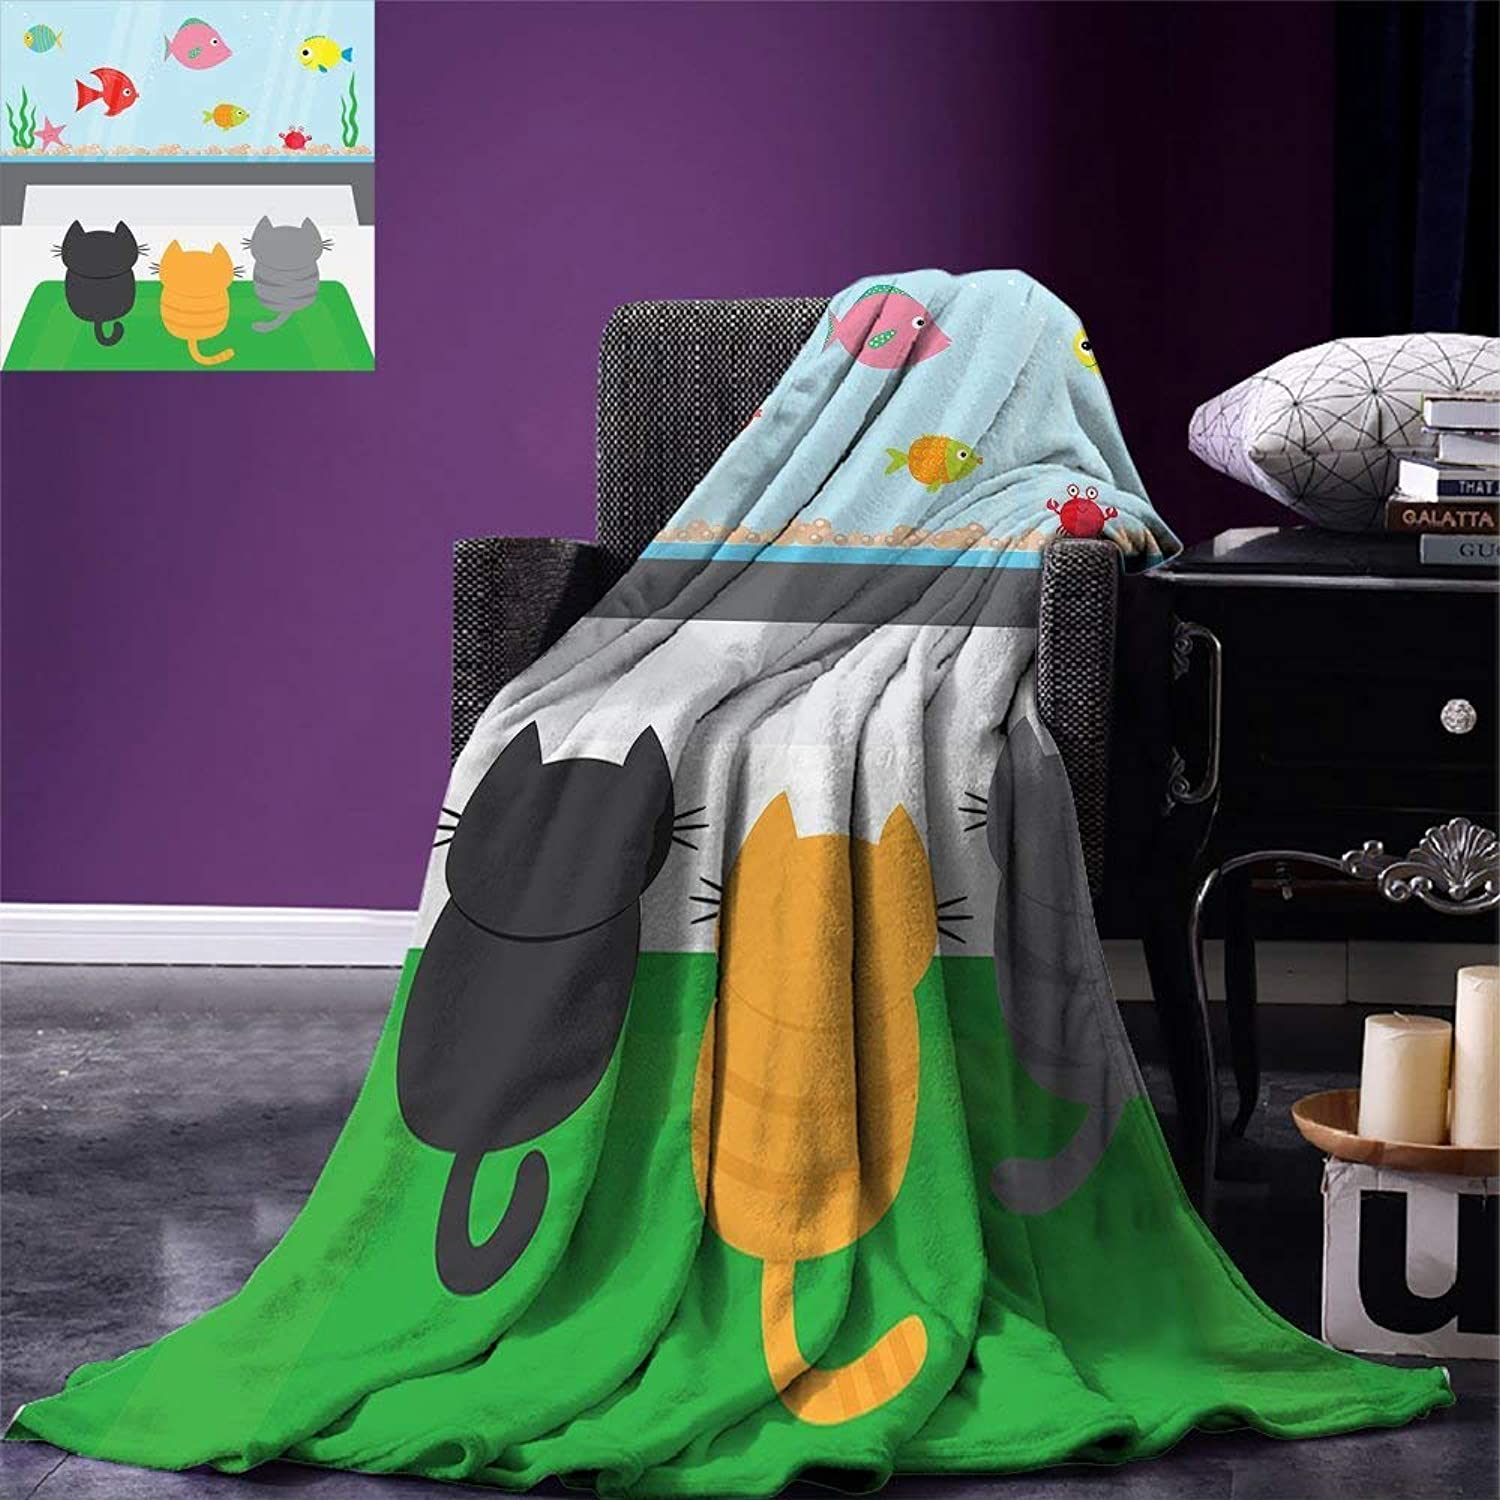 Dodom Cat Throw Blanket Cats Sitting on a Carpet and Looking at Cheerful Fish Tank Cat Family of Three Content Warm Microfiber125cm200cm